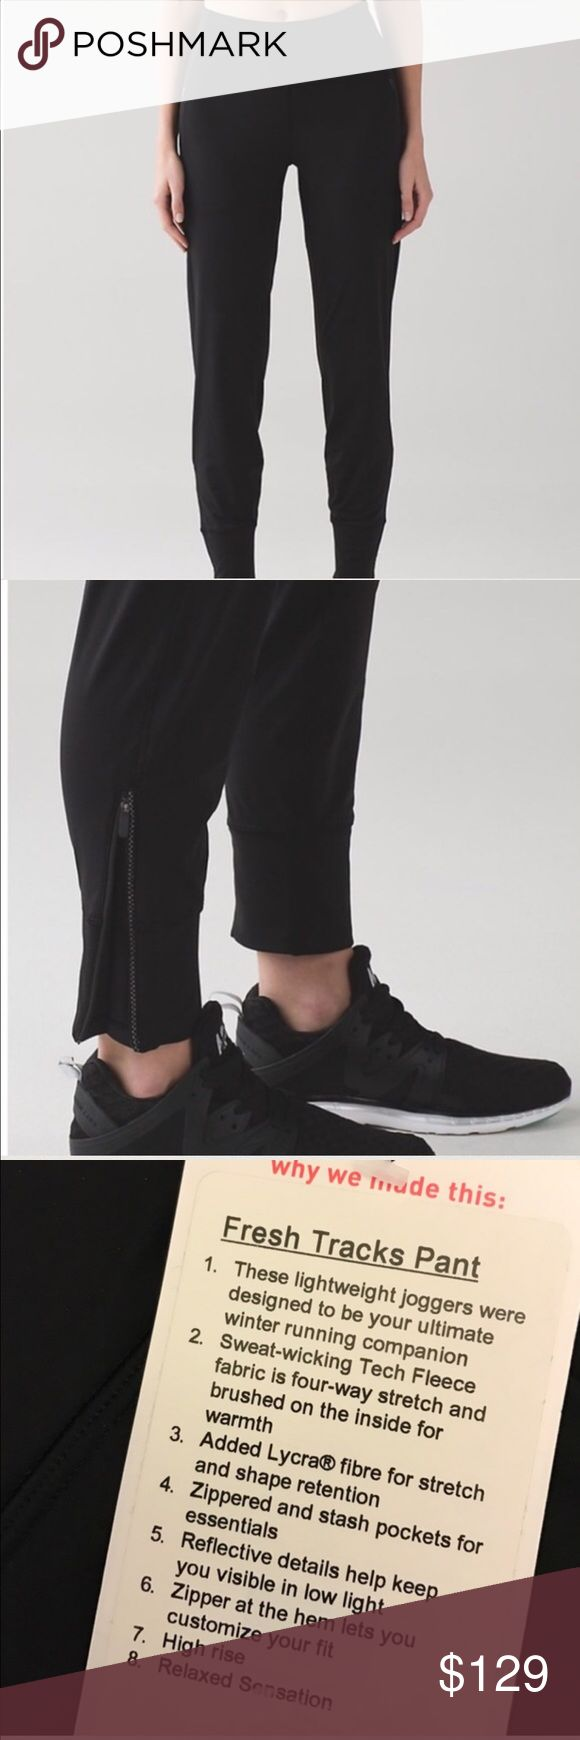 Lululemon Fresh Track Pants NWT/10 BLACK Lululemon Fresh Track Pants NWT/10 BLACK. ✅ALWAYS OPEN TO OFFERS-unless marked firm on price ✅OFFERS SHOULD BE MADE THROUGH POSH OFFER FEATURE ✅PRICES NOT DISCUSSED IN COMMENTS  ✅FEEL FREE TO ASK ANY QUESTIONS  ❎NO TRADES lululemon athletica Pants